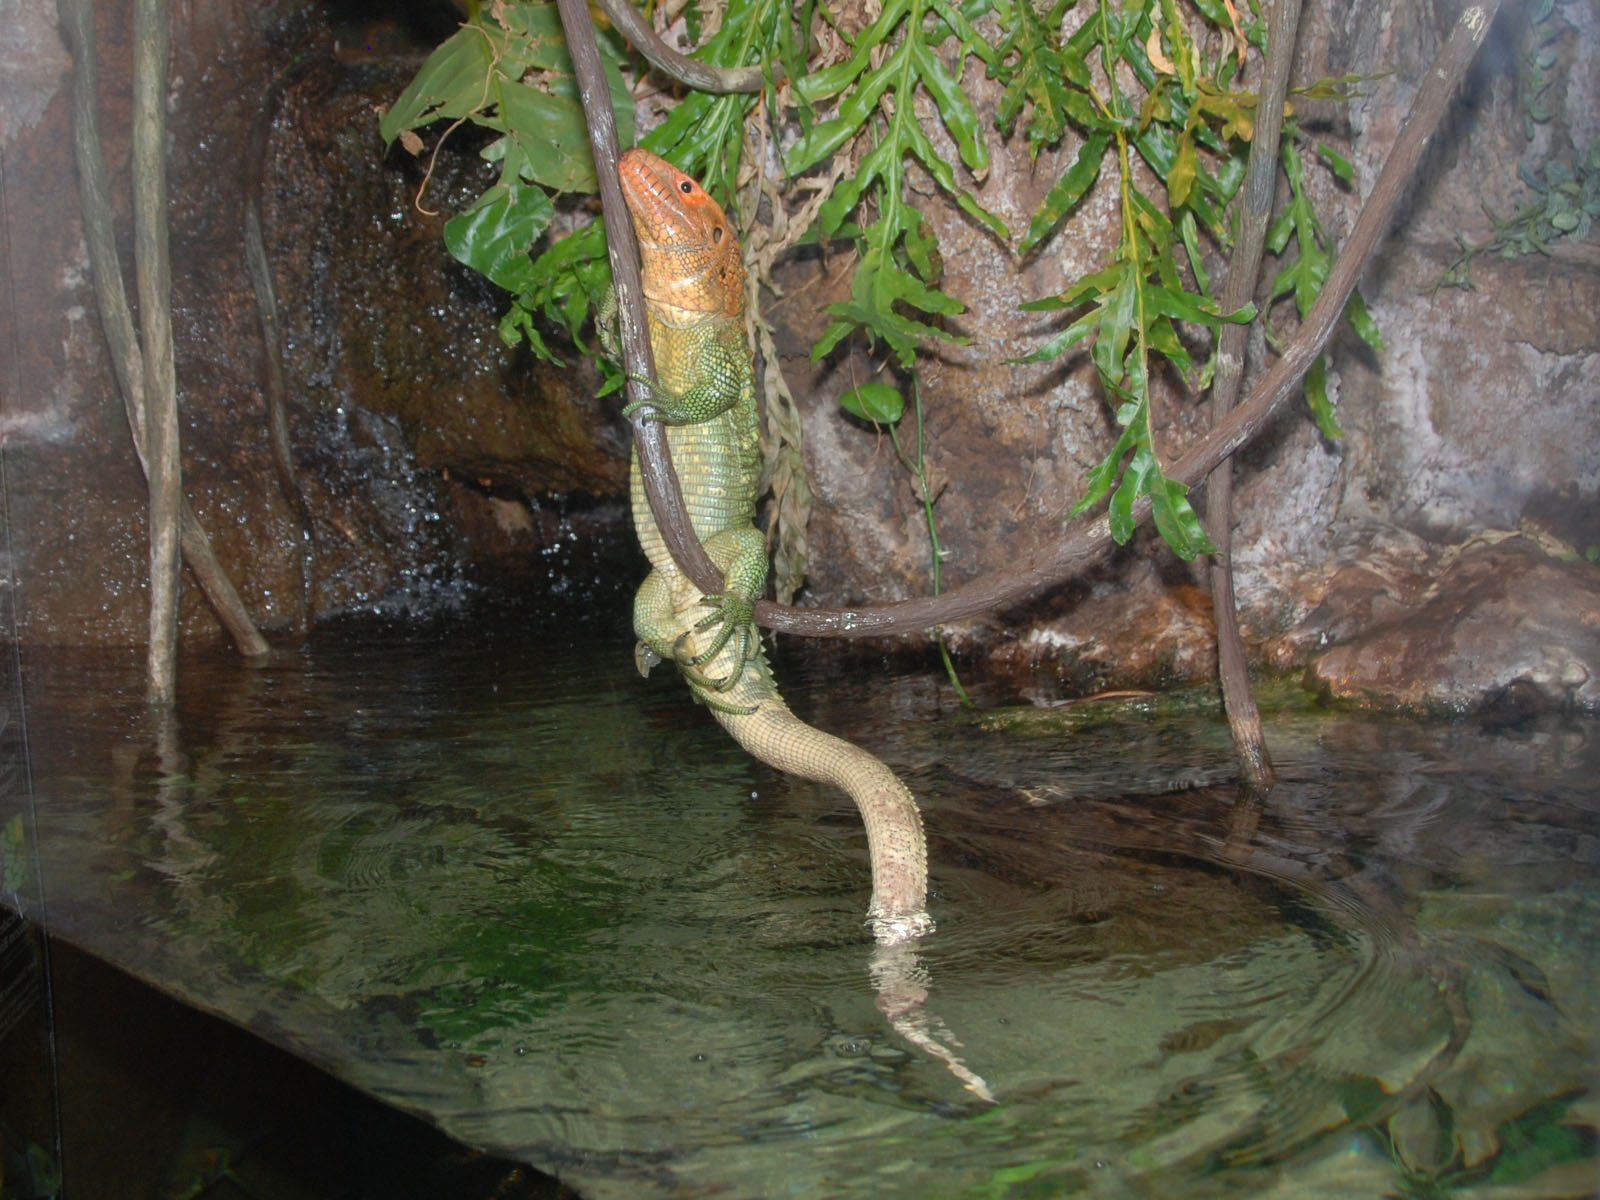 Caiman lizard enclosure - photo#6